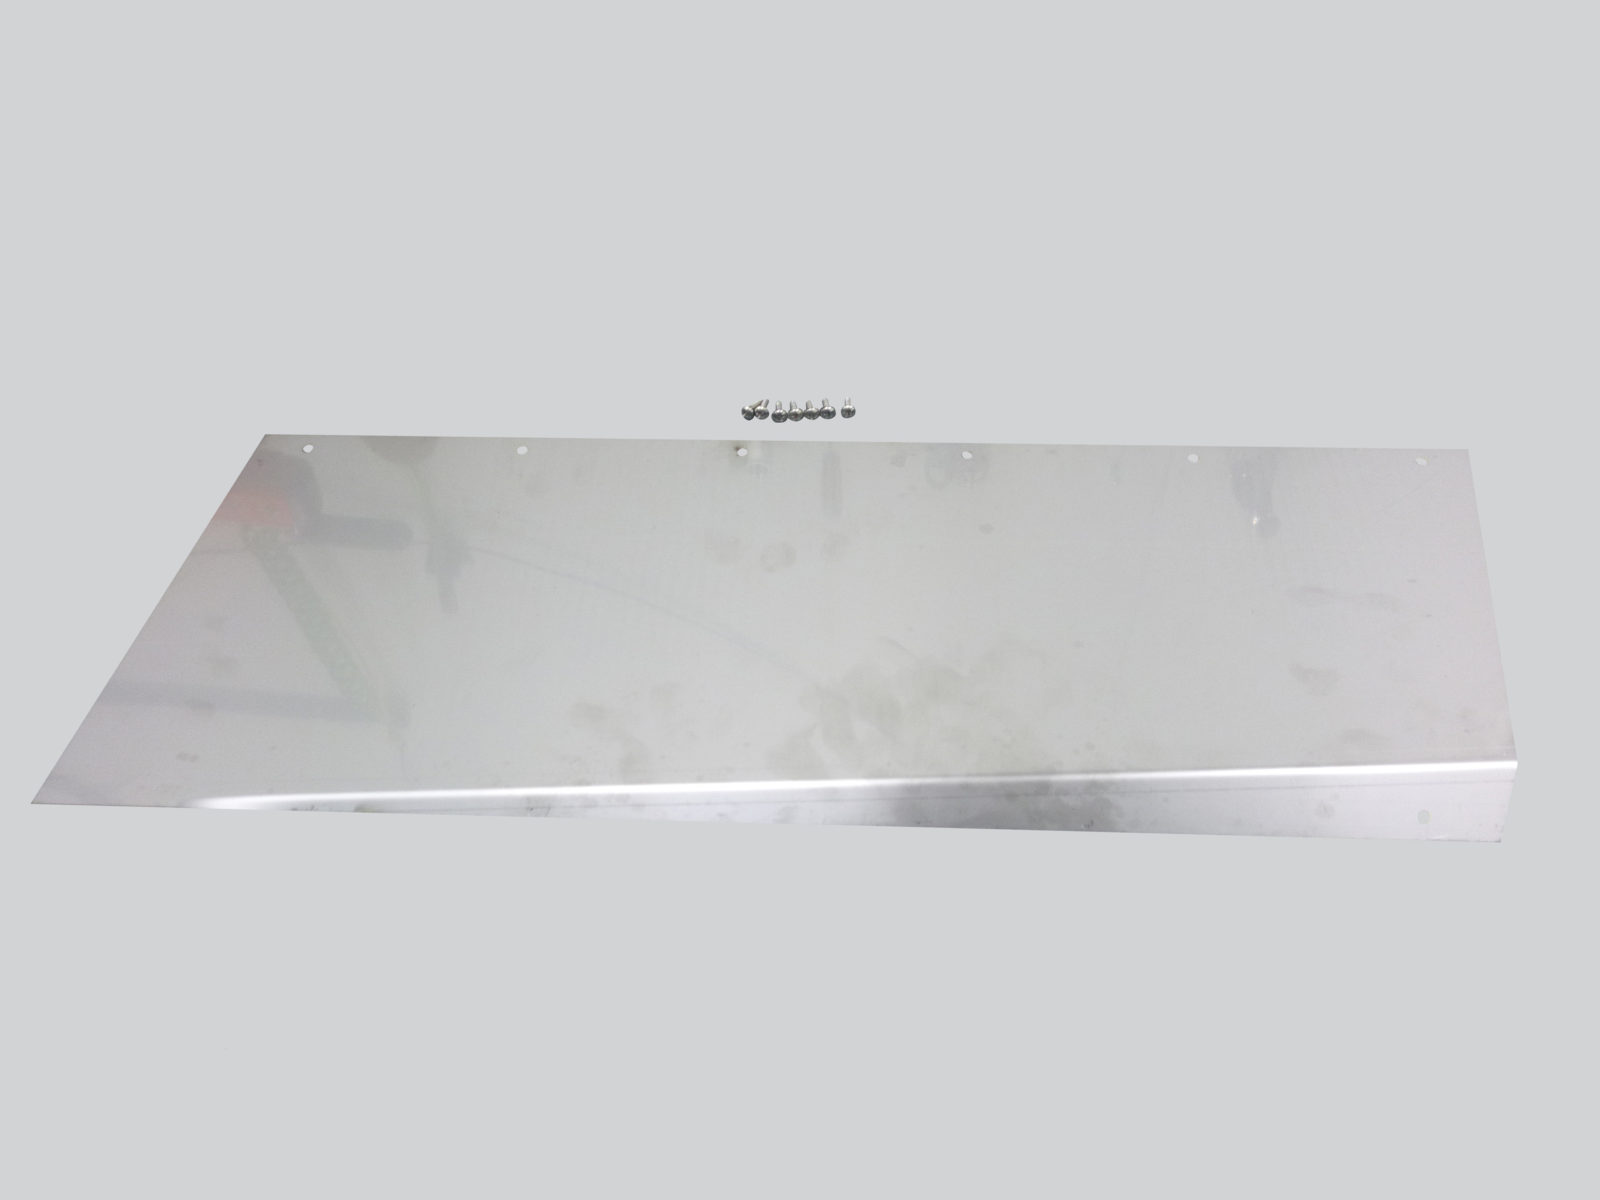 Right Center Back Stainless Steel Wear Plate (all row spacing)